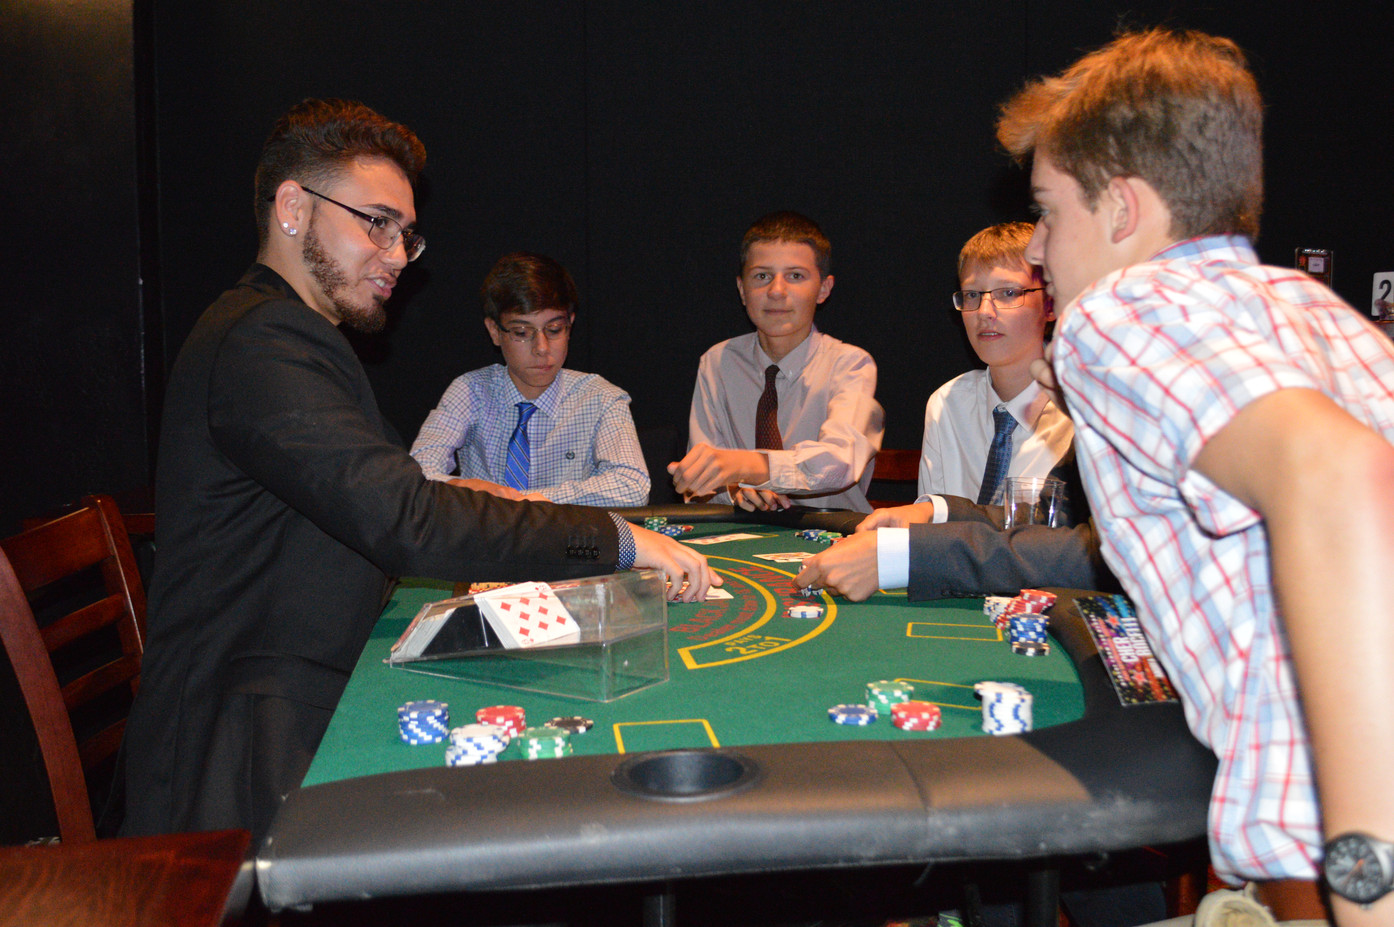 Casino-Game-For-Event.JPG